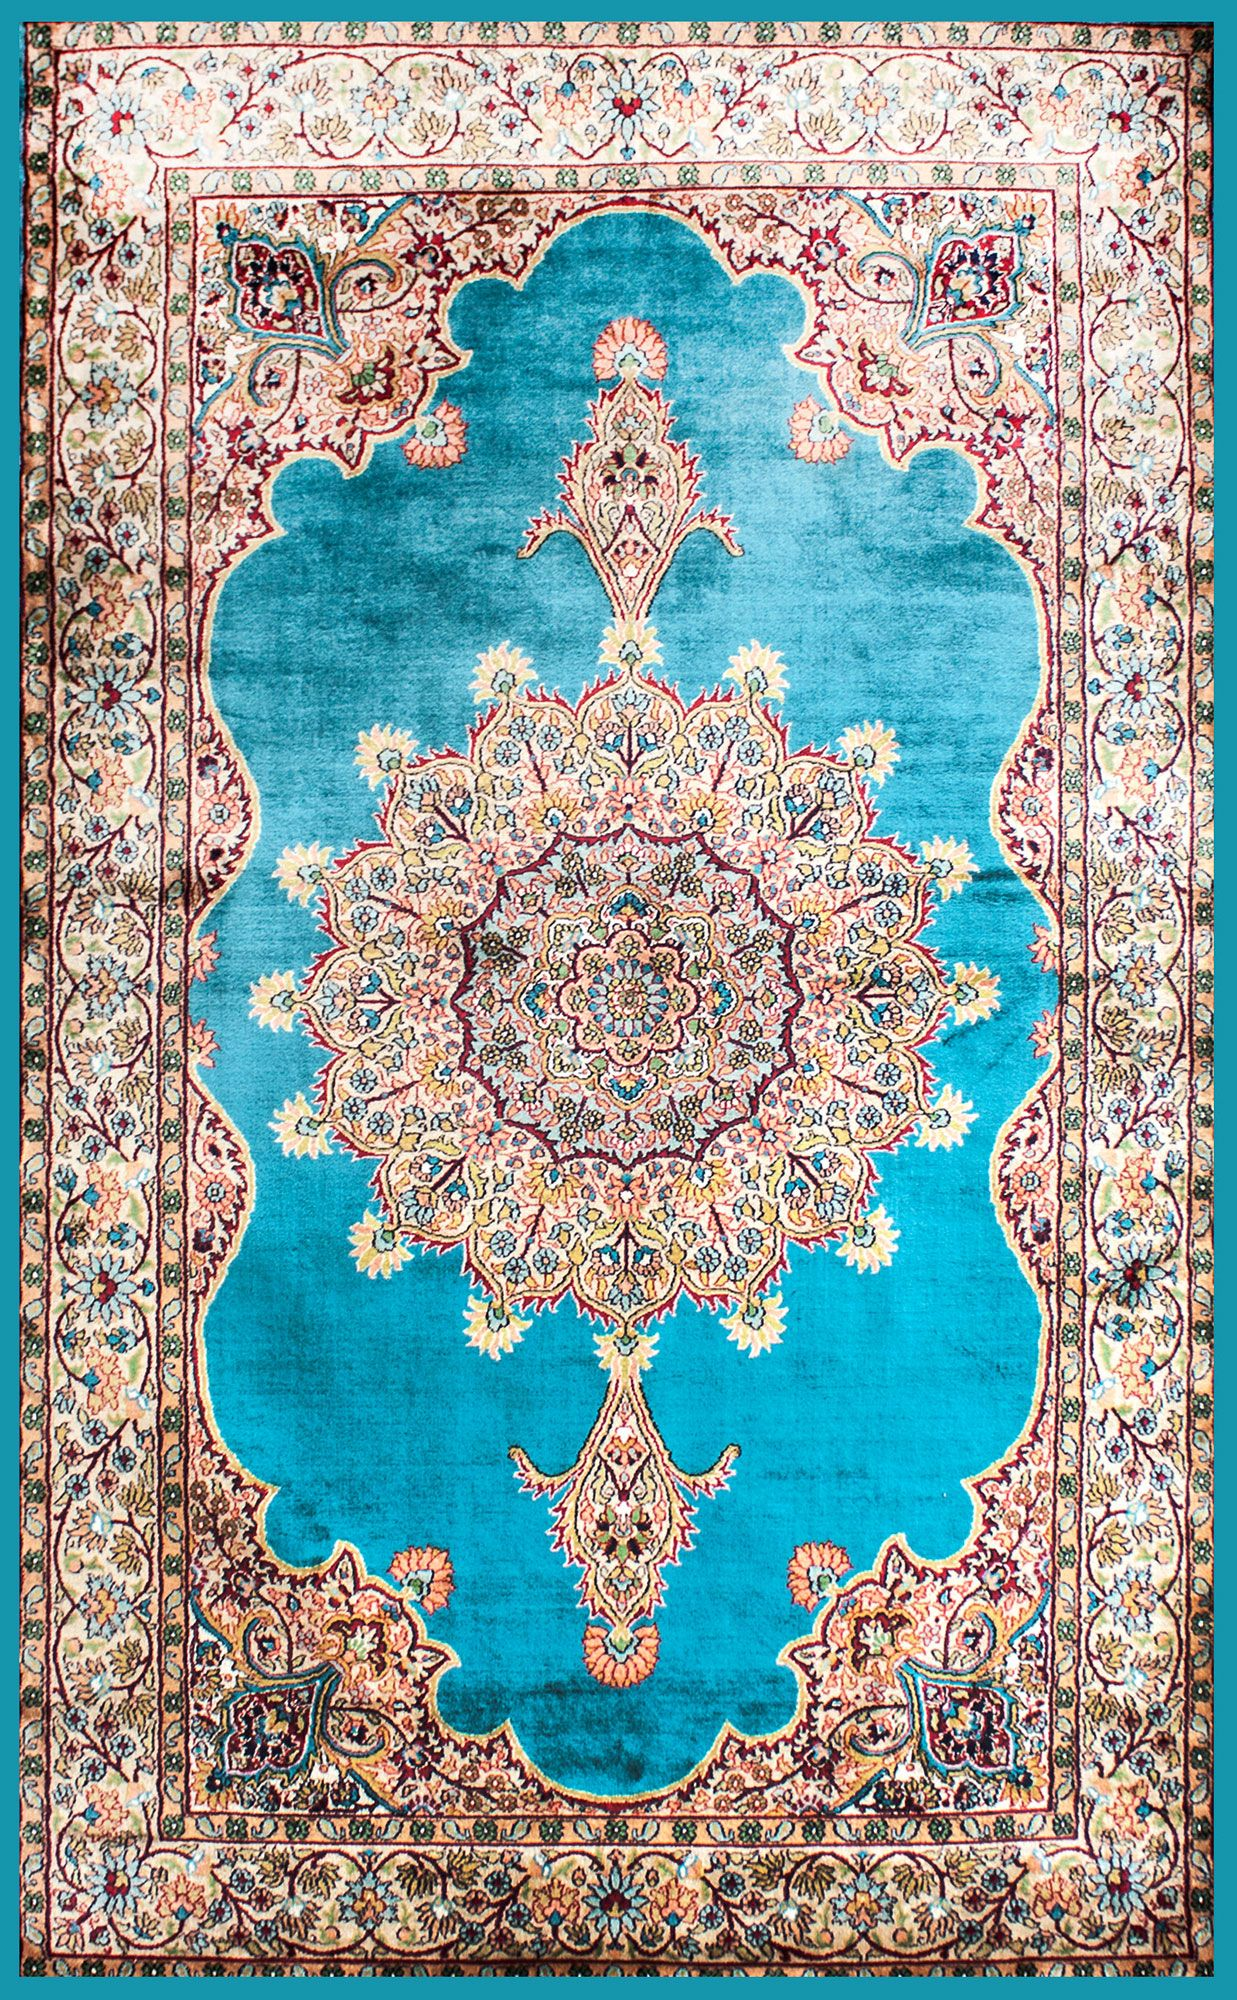 Pure Silk Rug Strong Fiber Not Resilient Luster Denier Are Used To Contrast Wool Field Or Ground More Expensive Than Wool Fla Rugs On Carpet Rugs India Rug